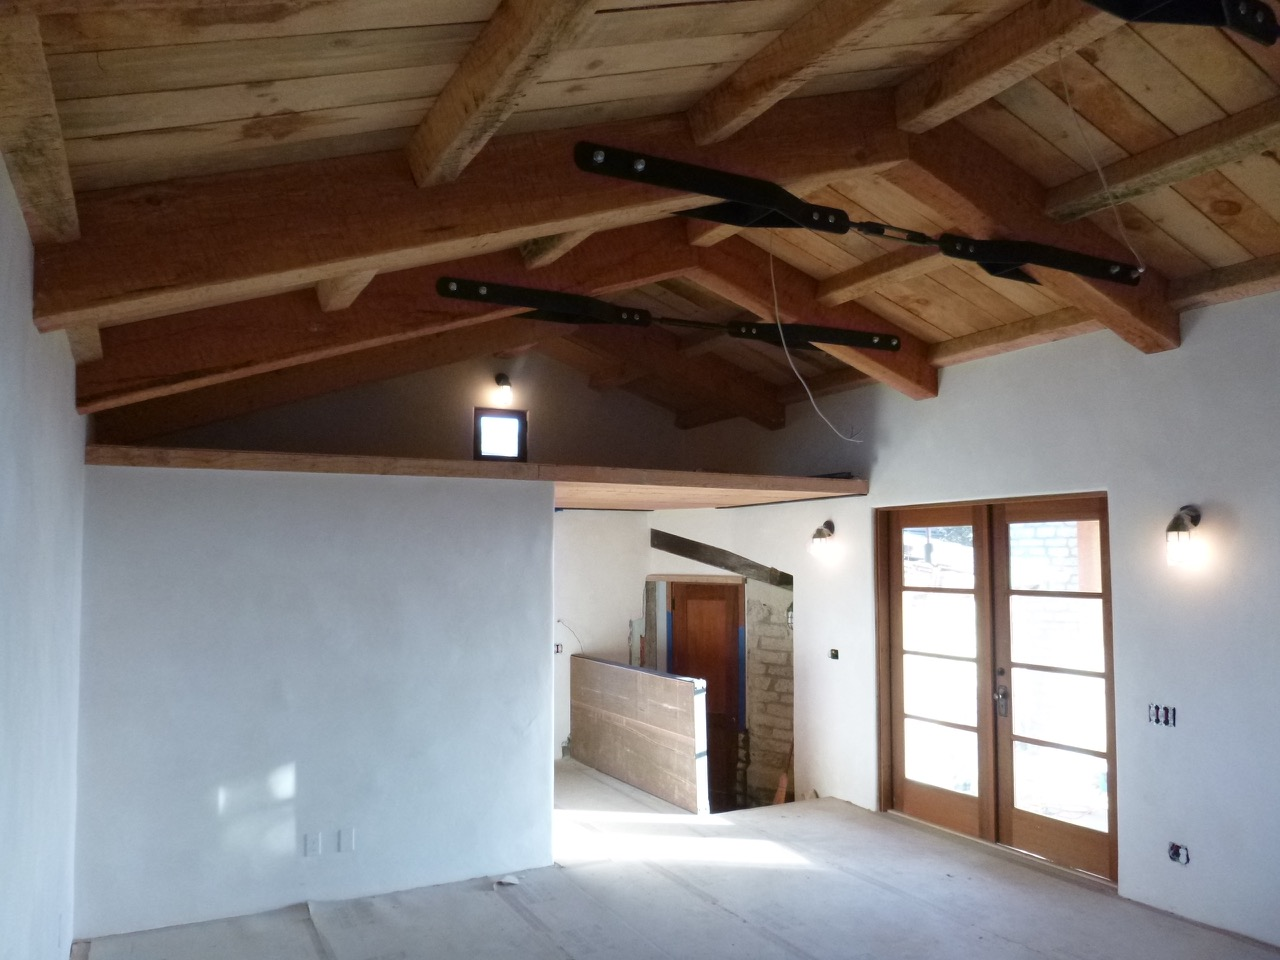 Roof structure, window frames & doorsmade from reclaimed wood